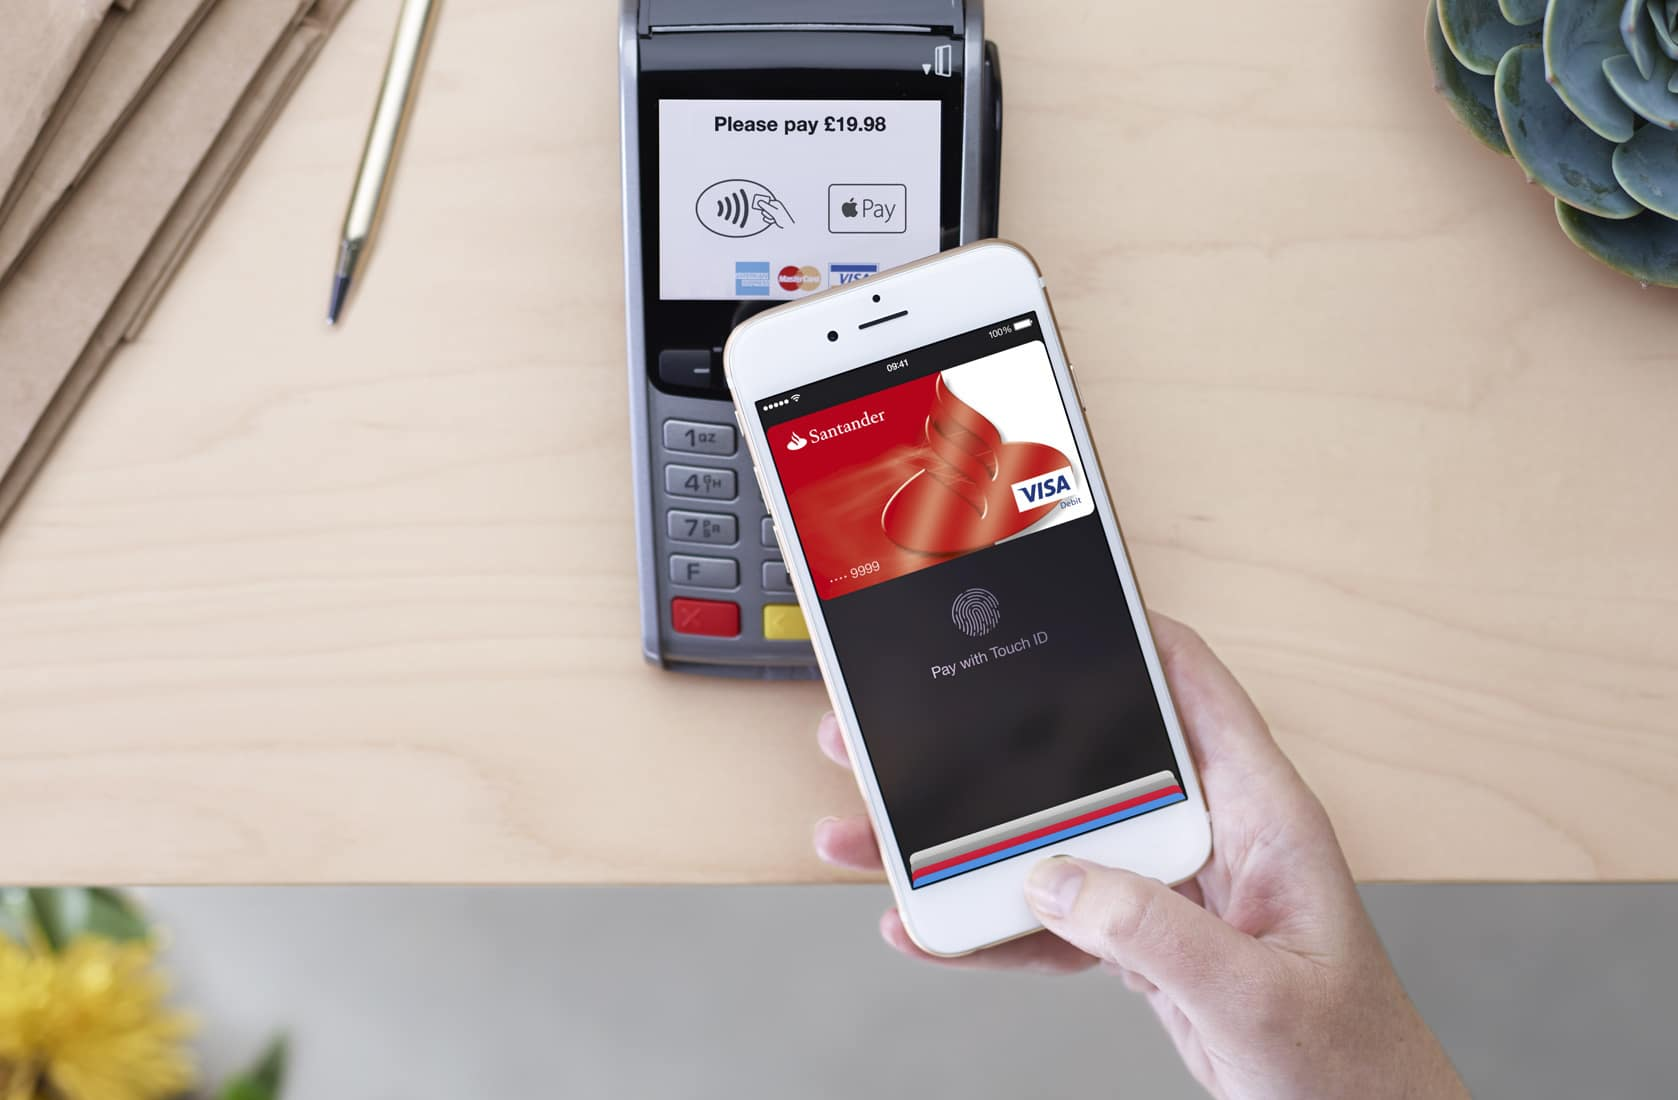 Apple Pay will never become mainstream in the UK because it is not easier than contactless payment.